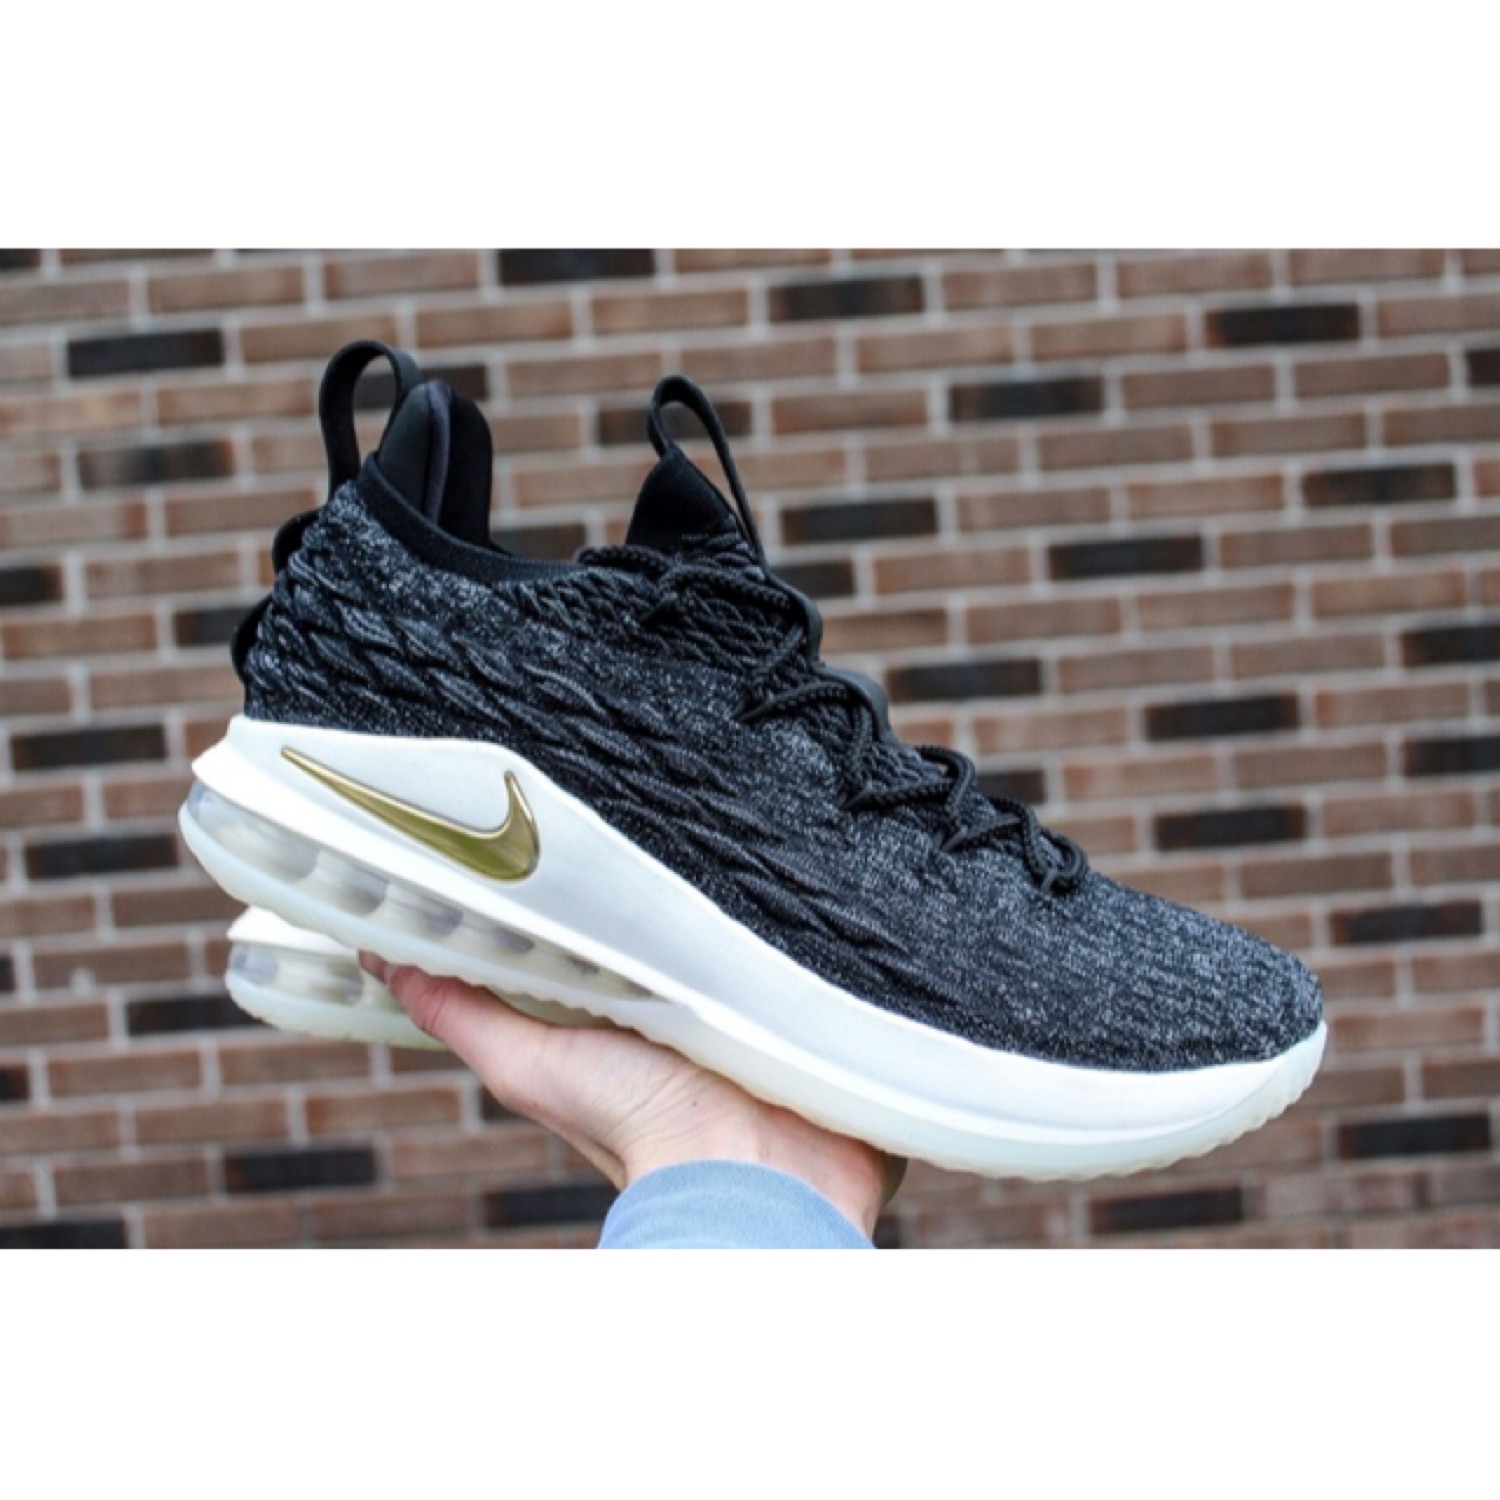 timeless design f8e5d 0df58 Nike Lebron 15 Low Black Metallic Gold